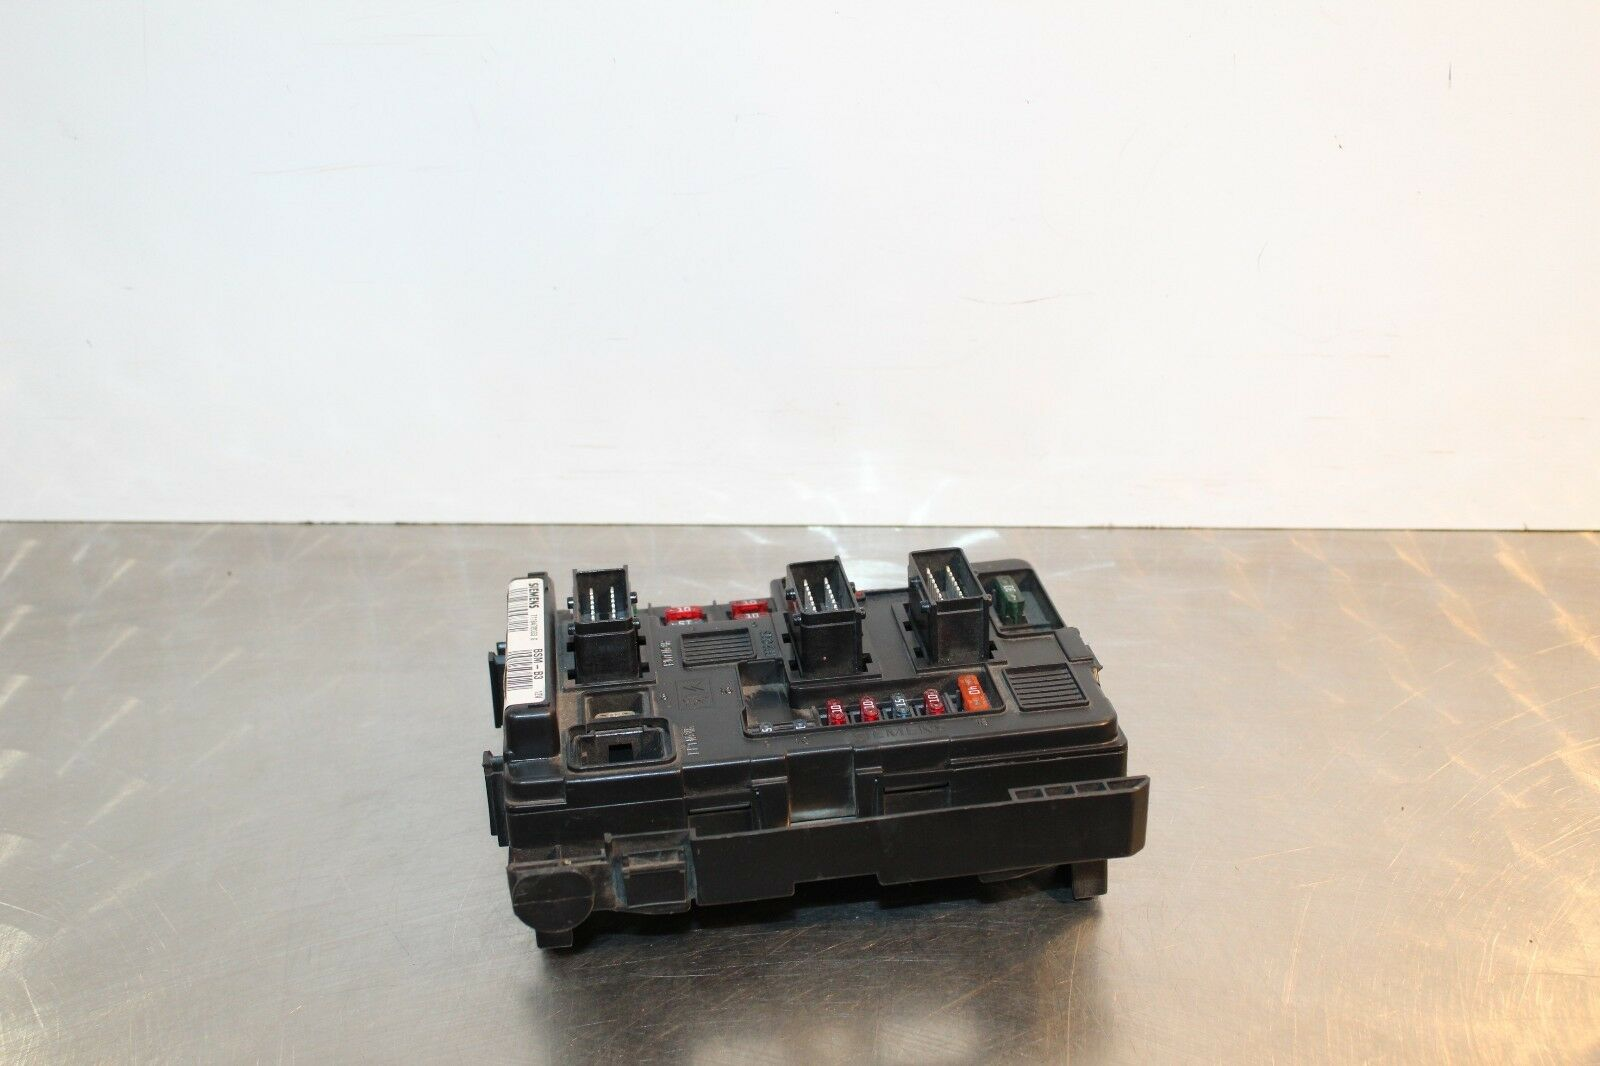 hight resolution of 2003 citroen c5 2 2 hdi bsm fuse box 9643498880 1 of 11 see more